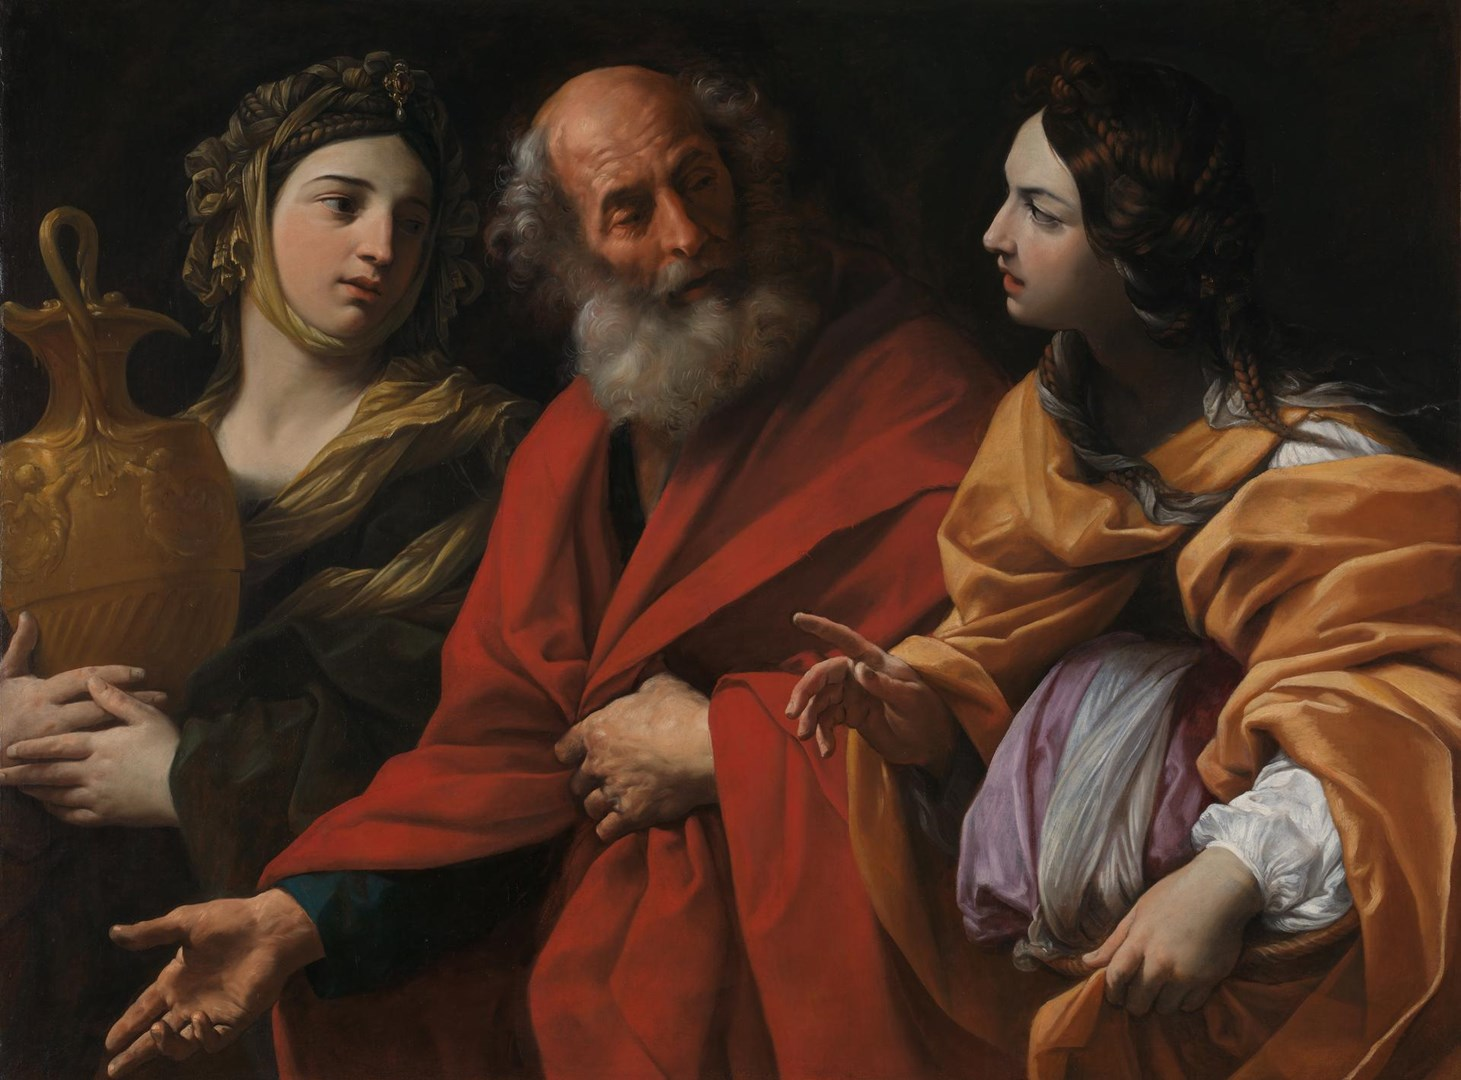 Lot and his Daughters leaving Sodom by Guido Reni